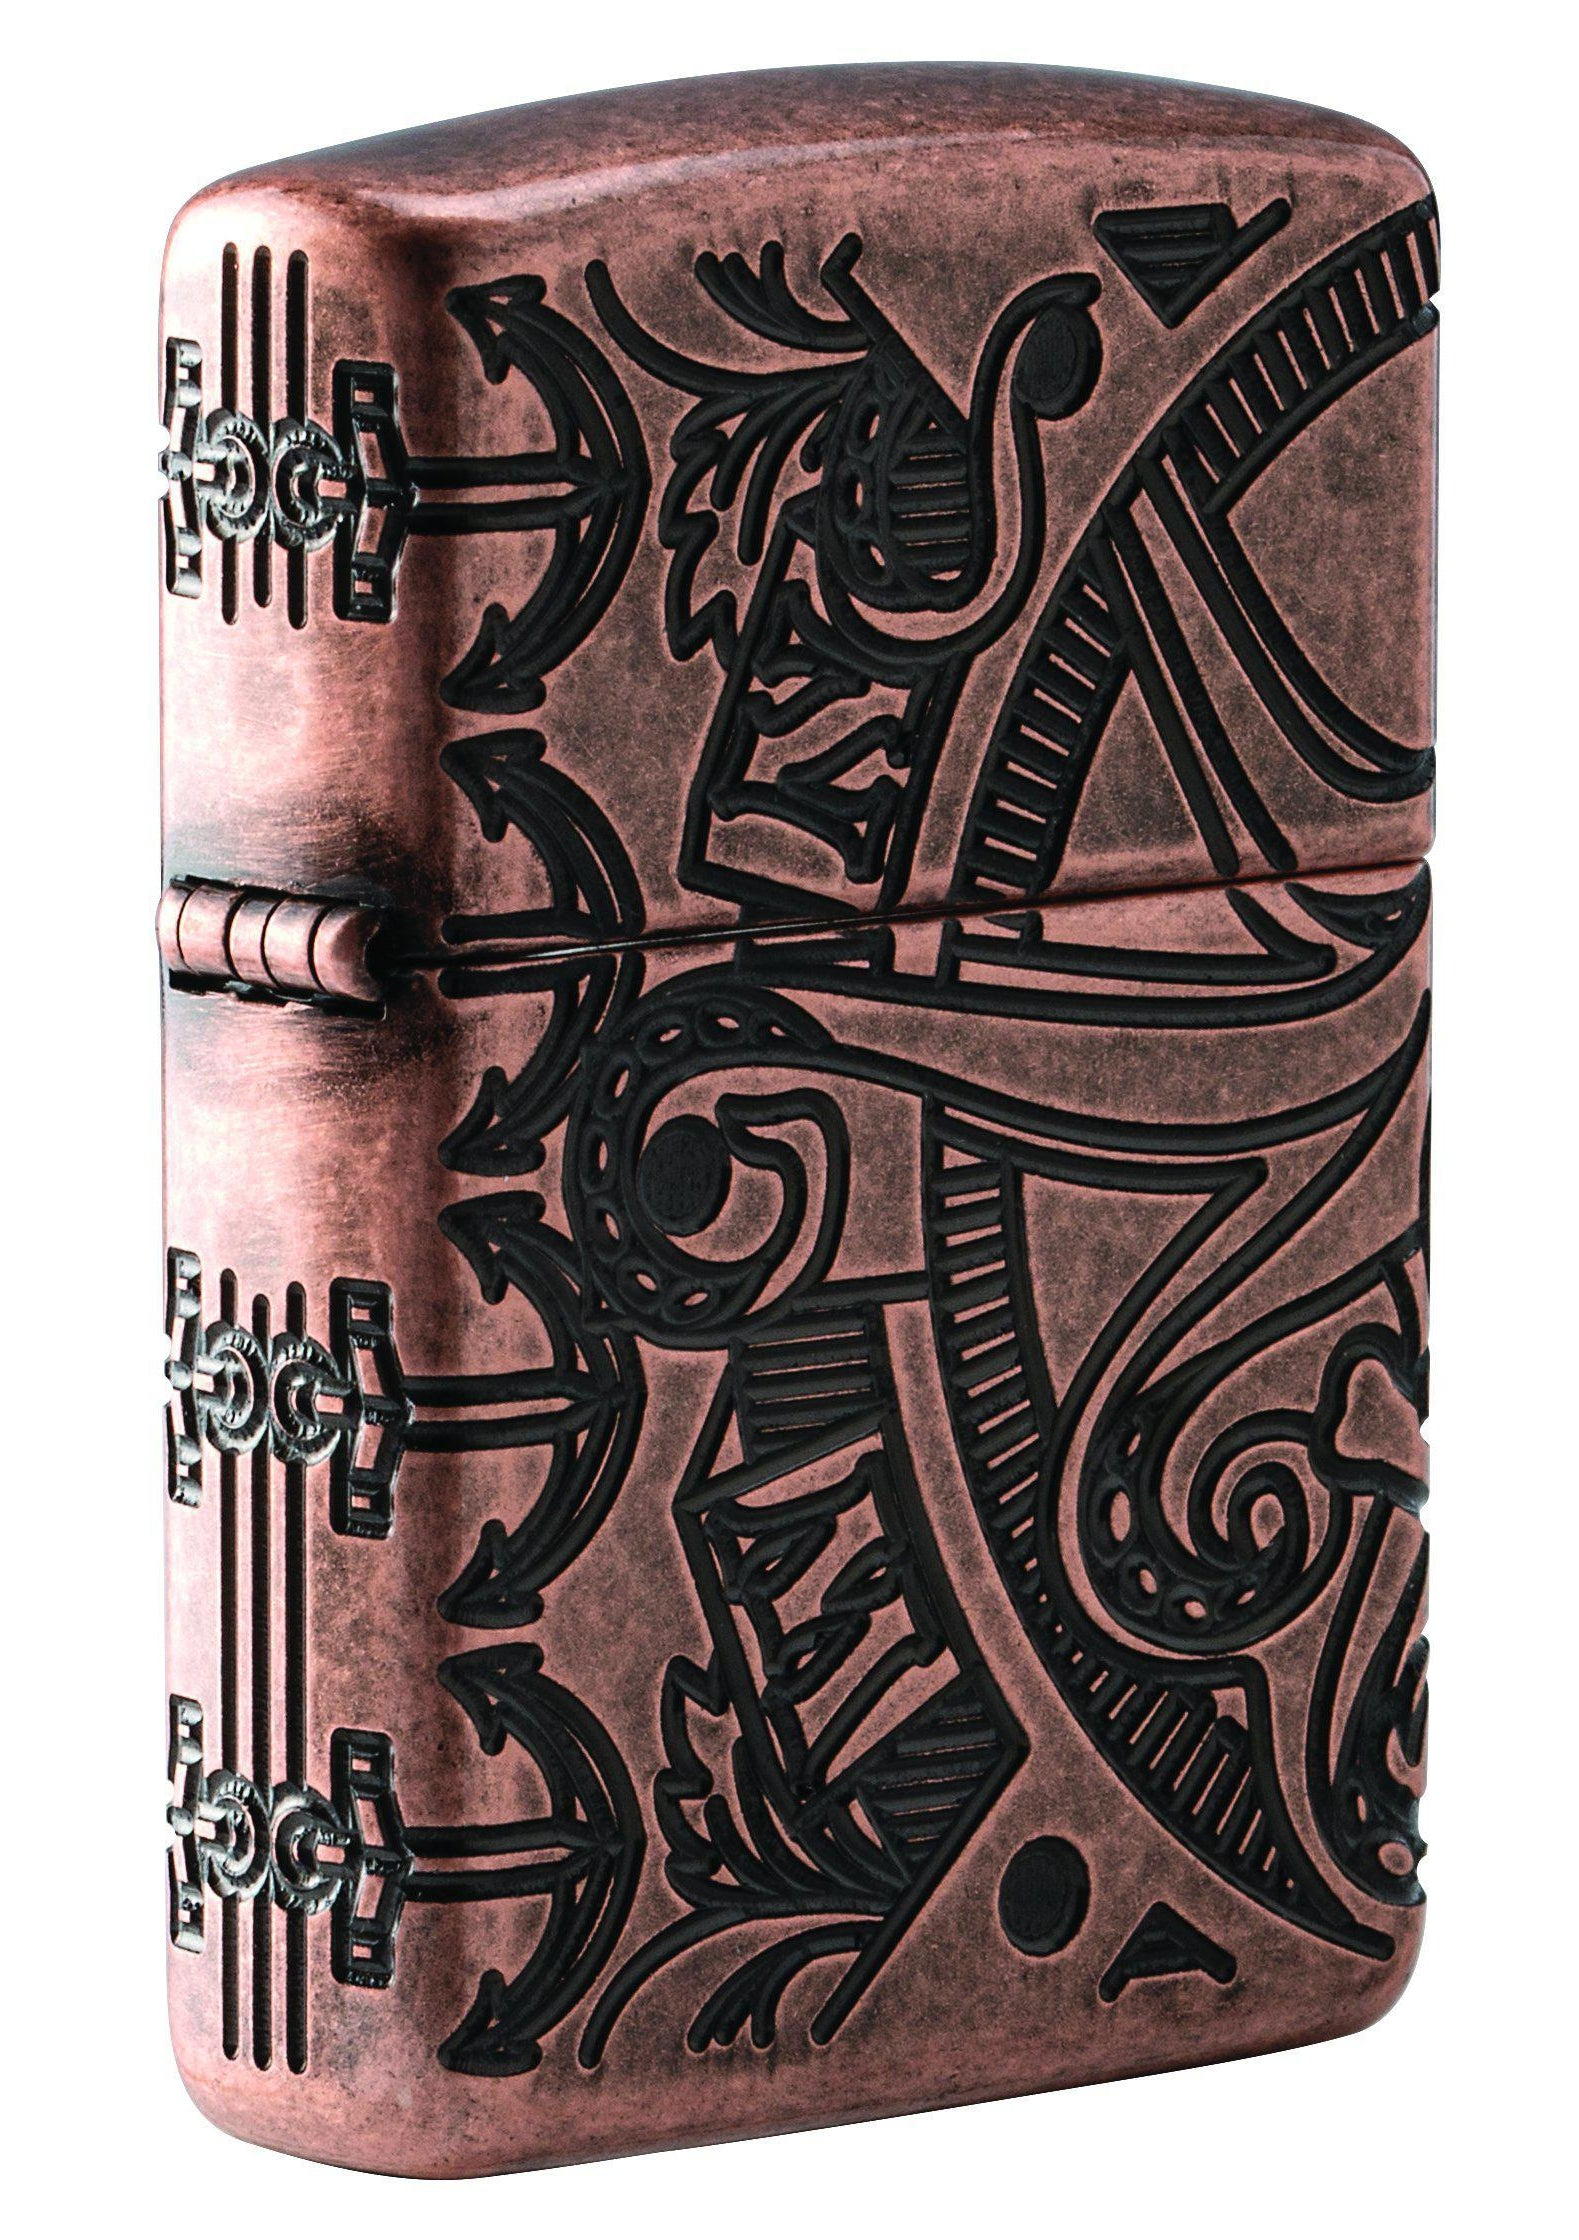 Zippo Lighter: Armor MultiCut Nautical Scene - Antique Copper 49000 (2059591614579)